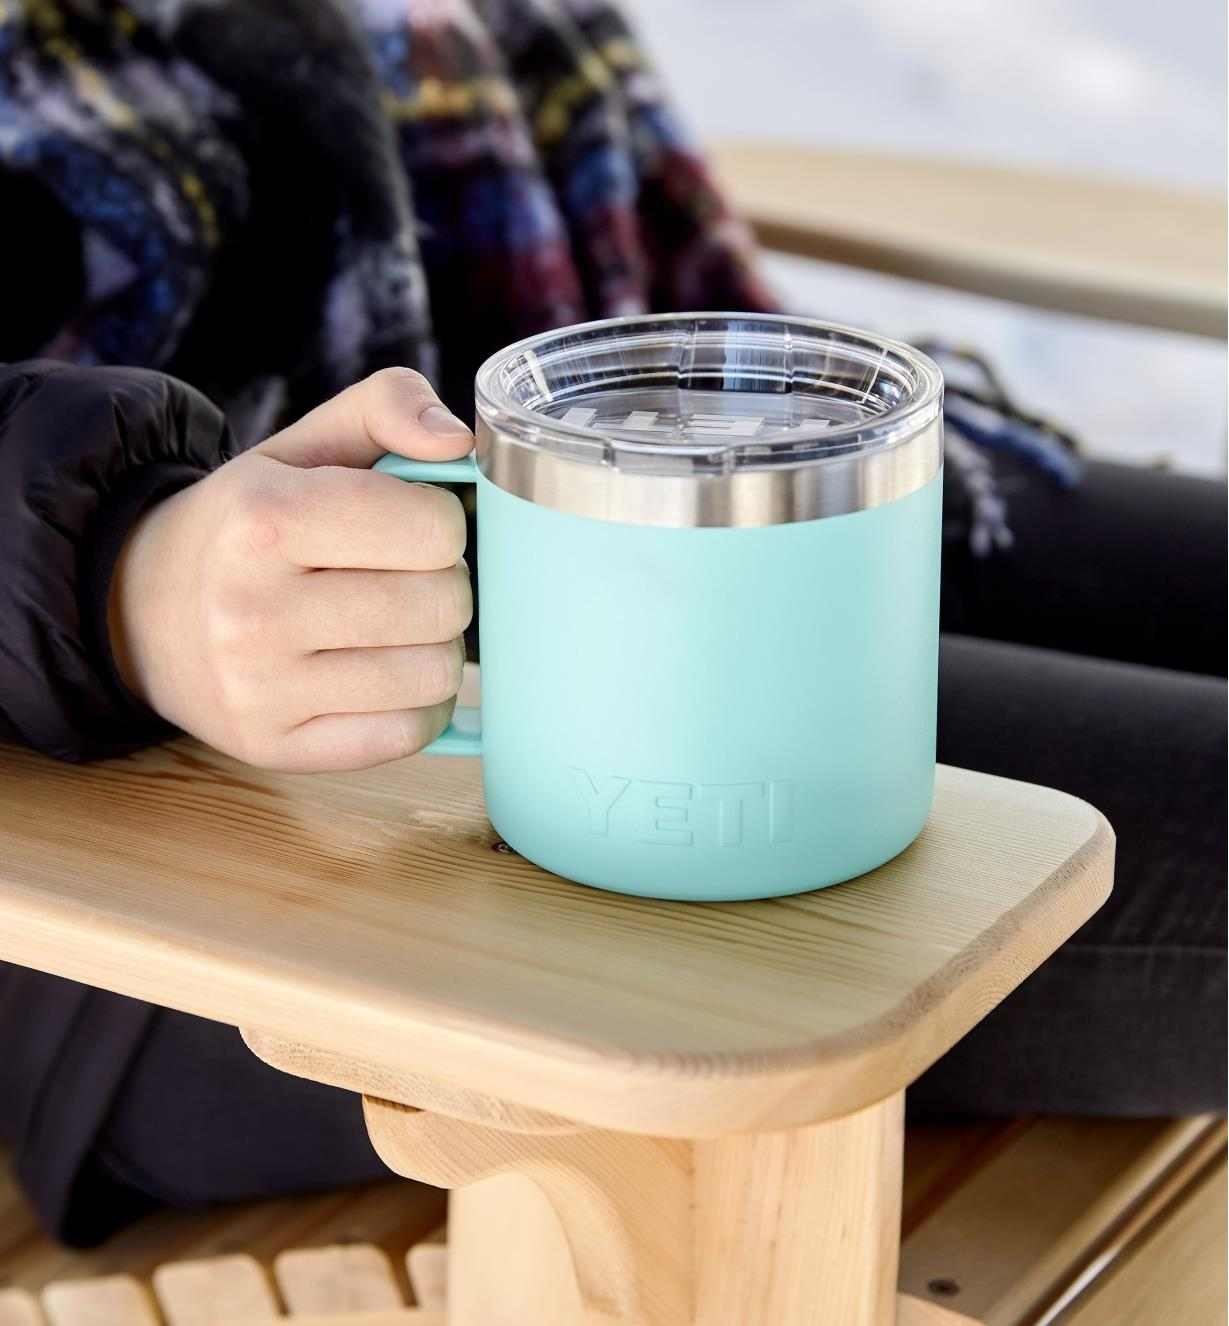 Yeti Rambler mug held on the armrest of an Adirondack deck chair